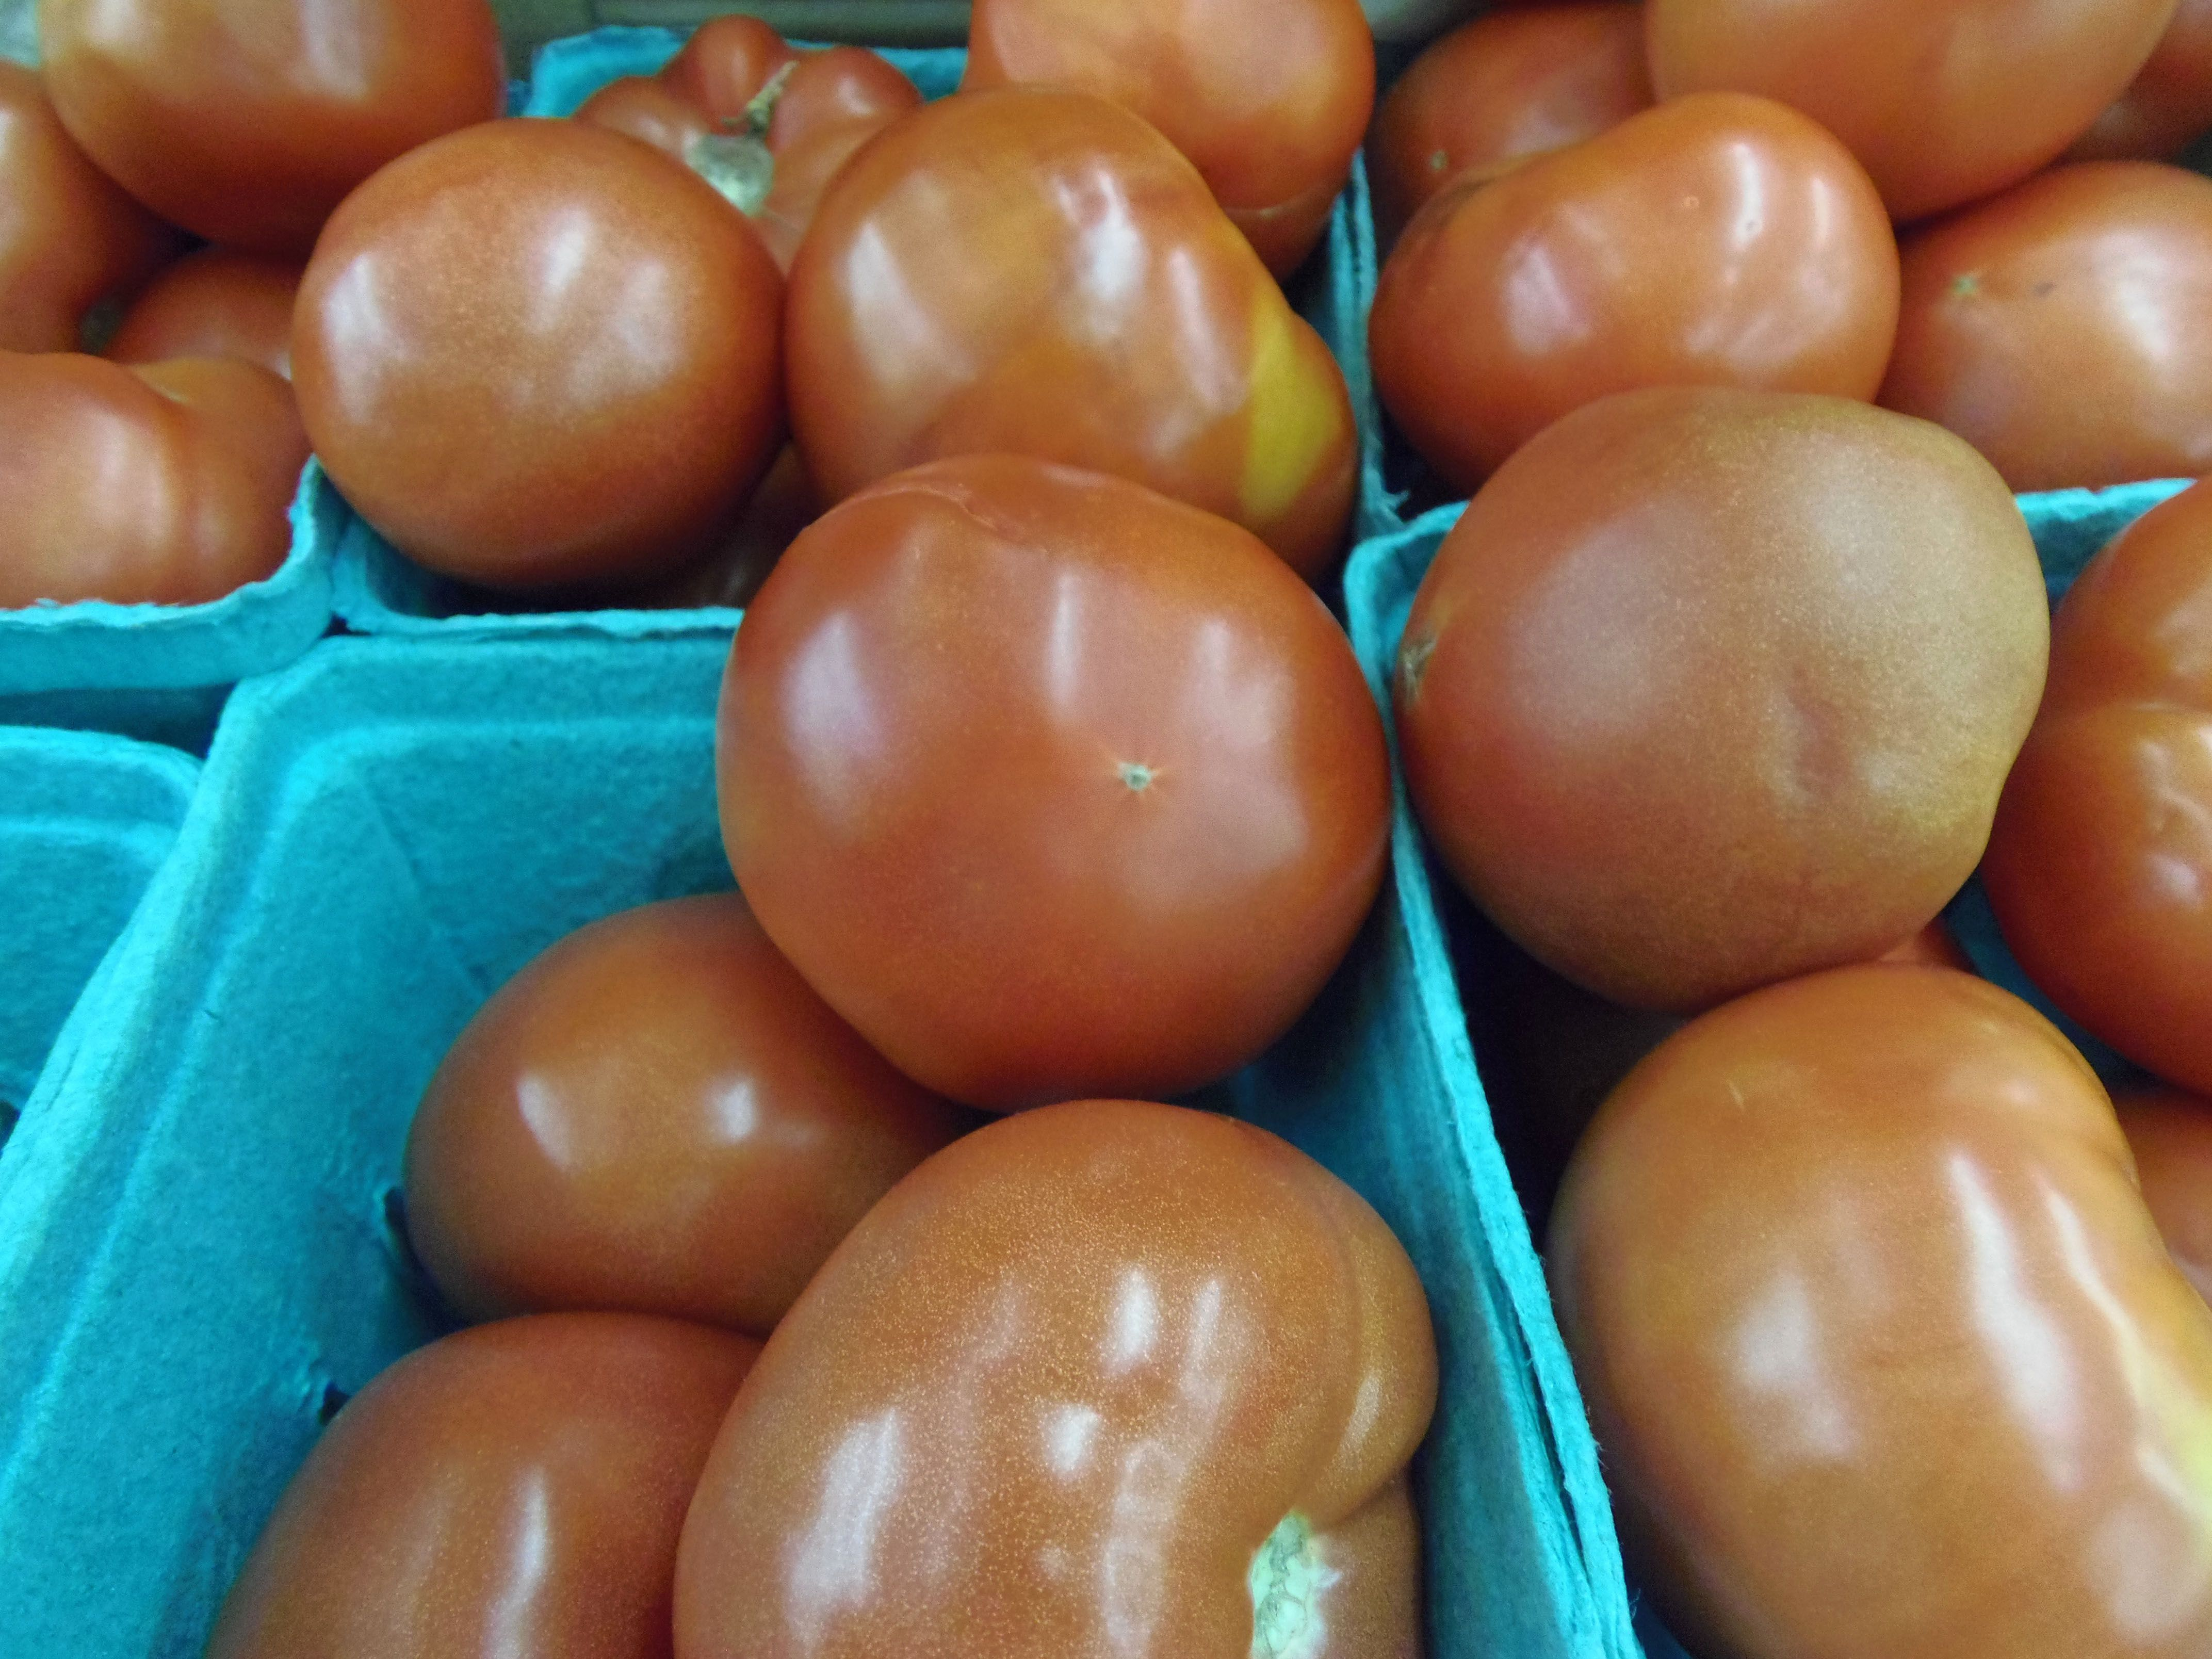 tomatoes in cartons